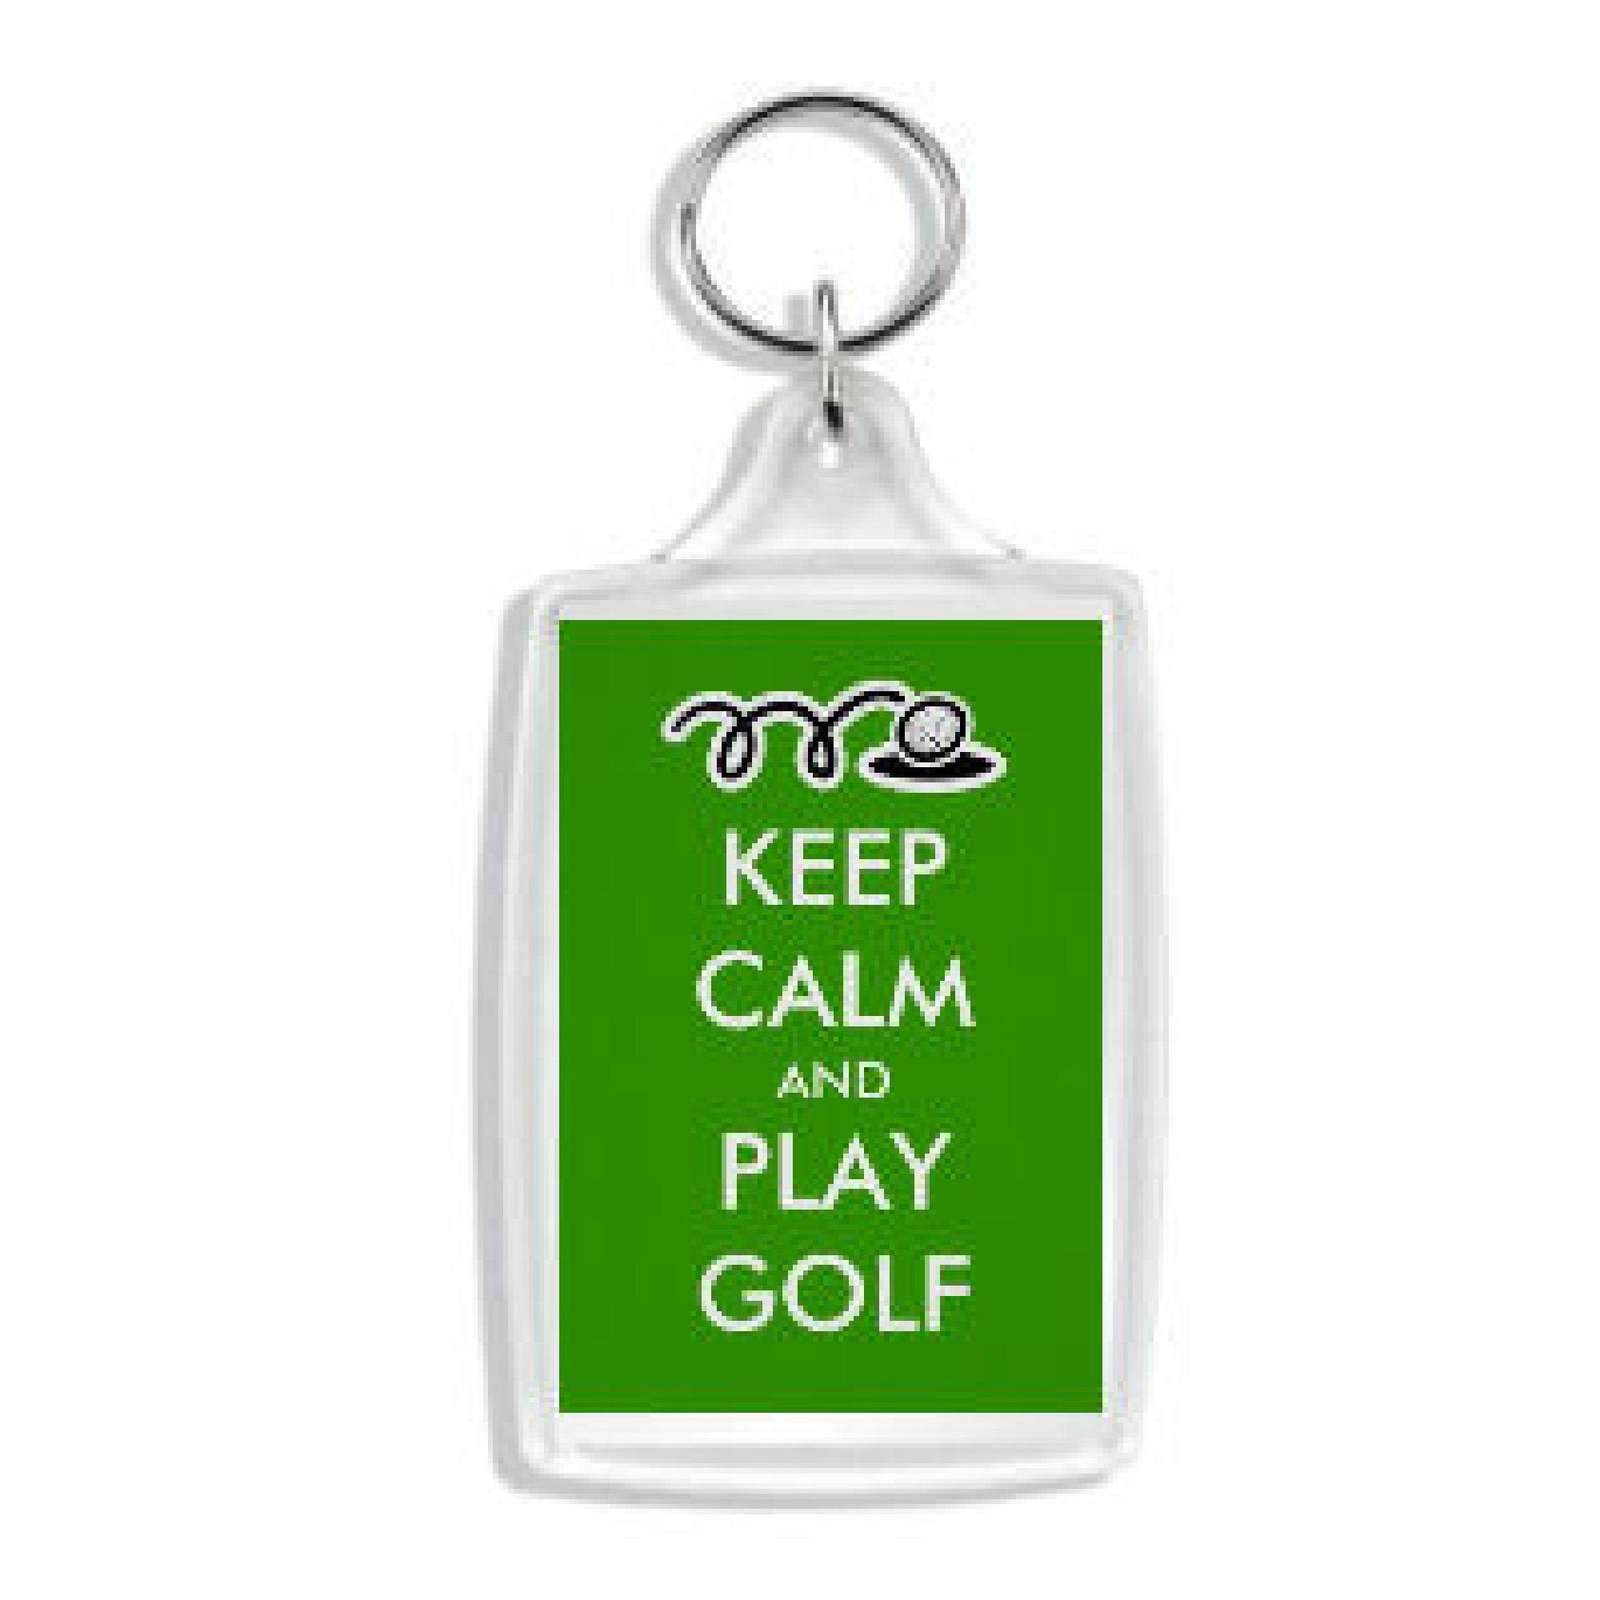 keep calm and play golf  handmade in uk from uk made parts keyring, keyfob